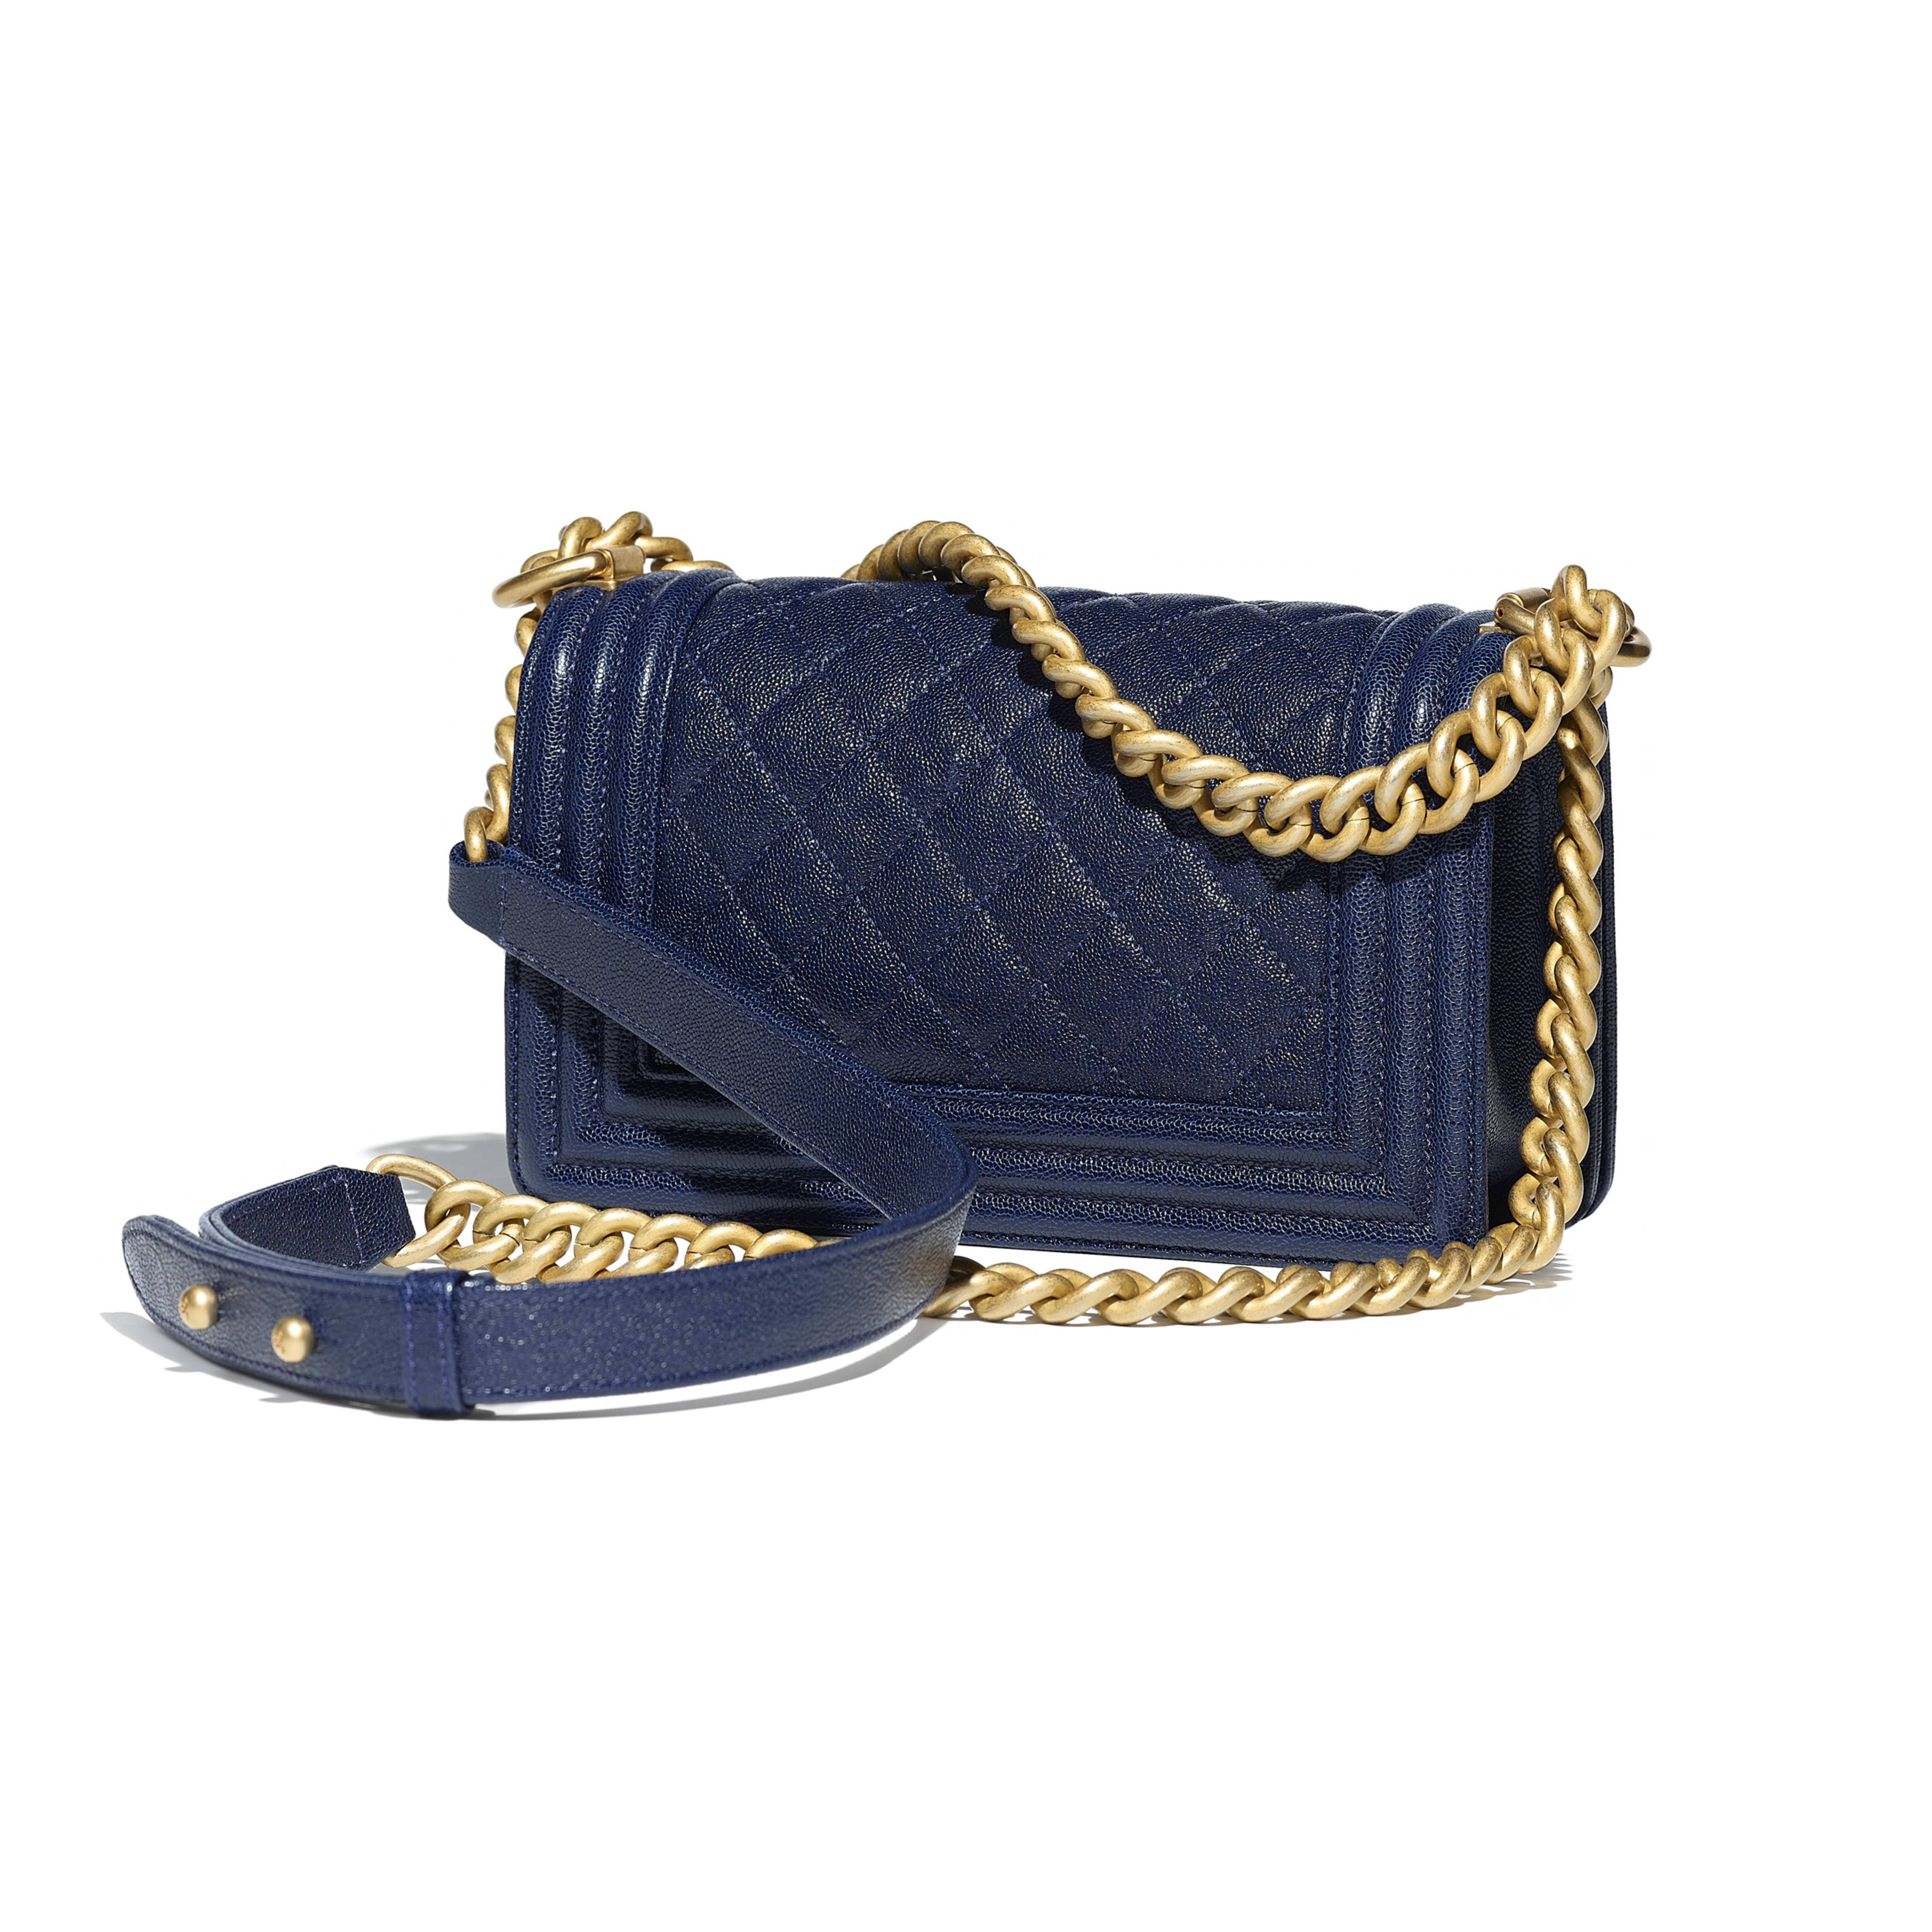 Small BOY CHANEL Handbag Grained Calfskin & Gold-Tone Metal Navy Blue -                                       view 2 - see full sized version